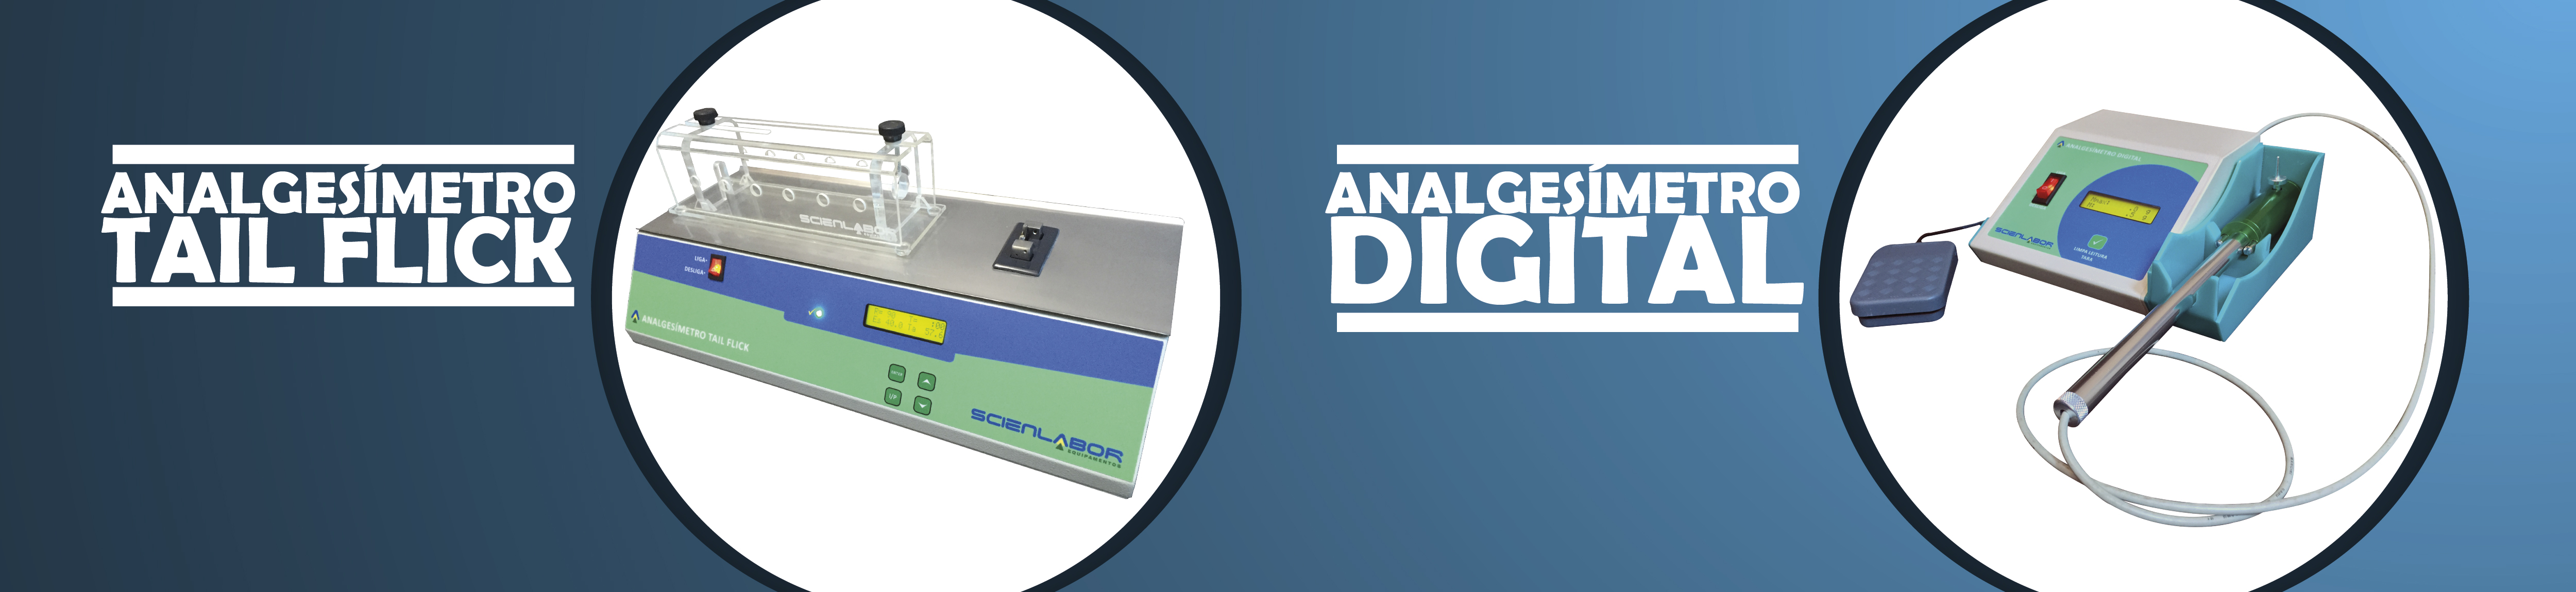 Analgesímetro Tail Flick e Digital